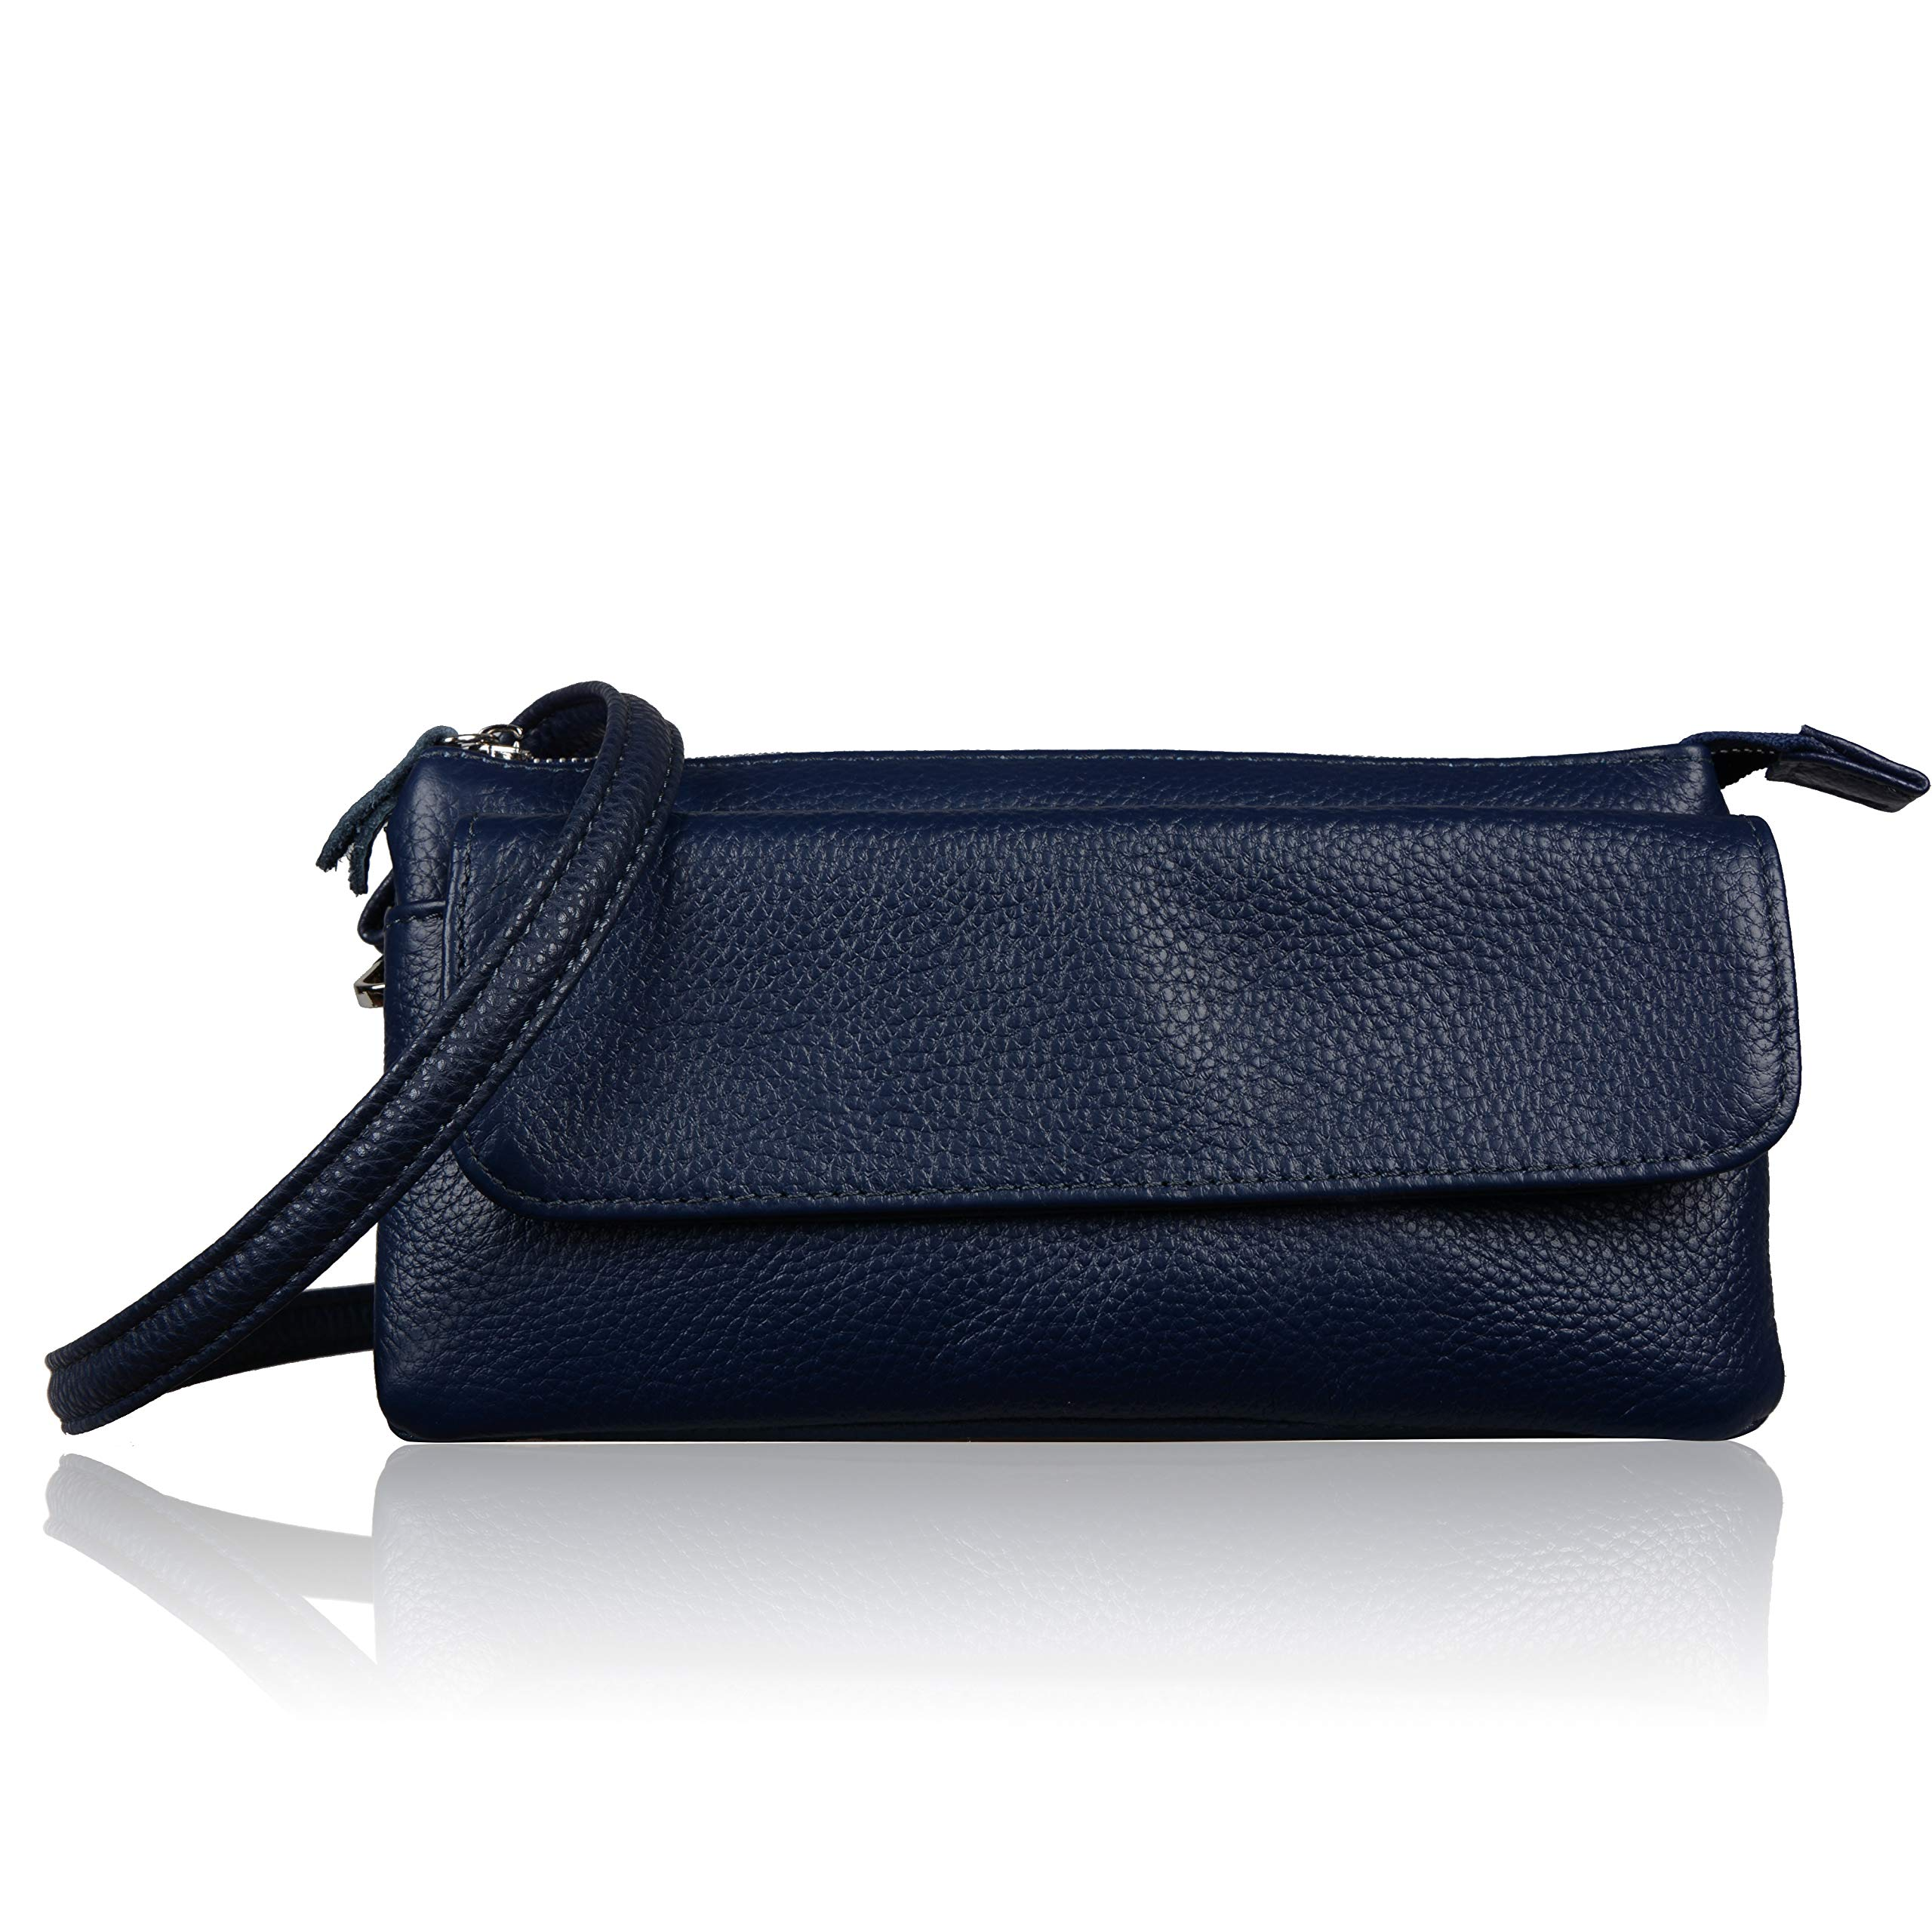 Befen Leather Wristlet Clutch Smartphone Crossbody Wallet with Card Slots/Shoulder Strap/Wrist Strap (Navy Blue Large)